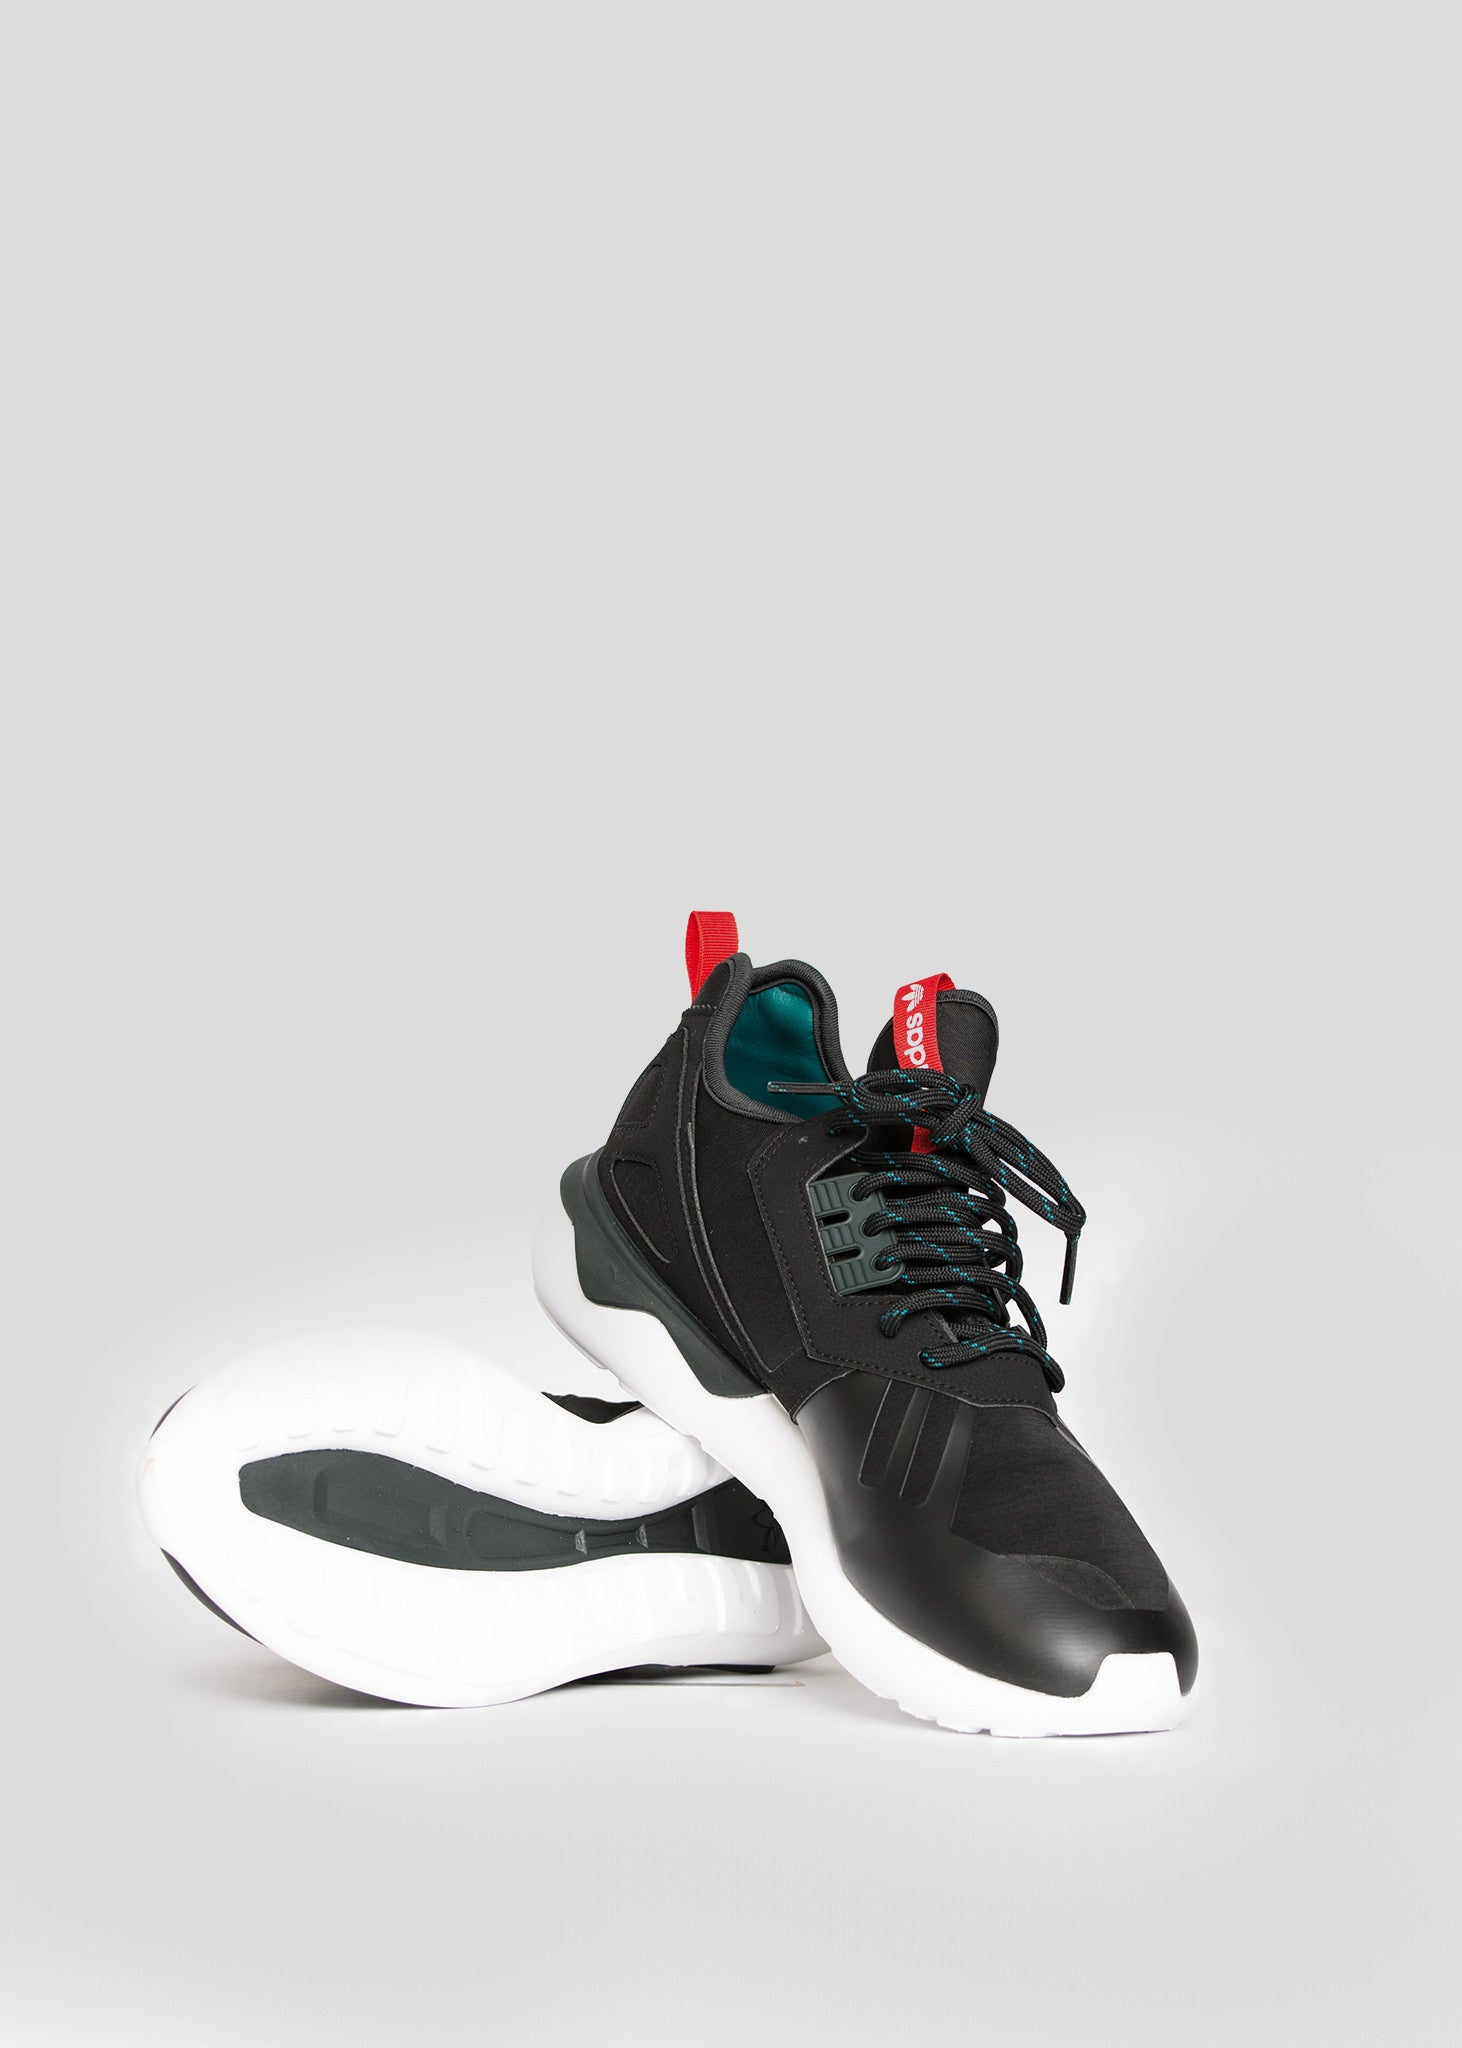 finest selection bb461 9c633 adidas Originals Tubular Runner Size